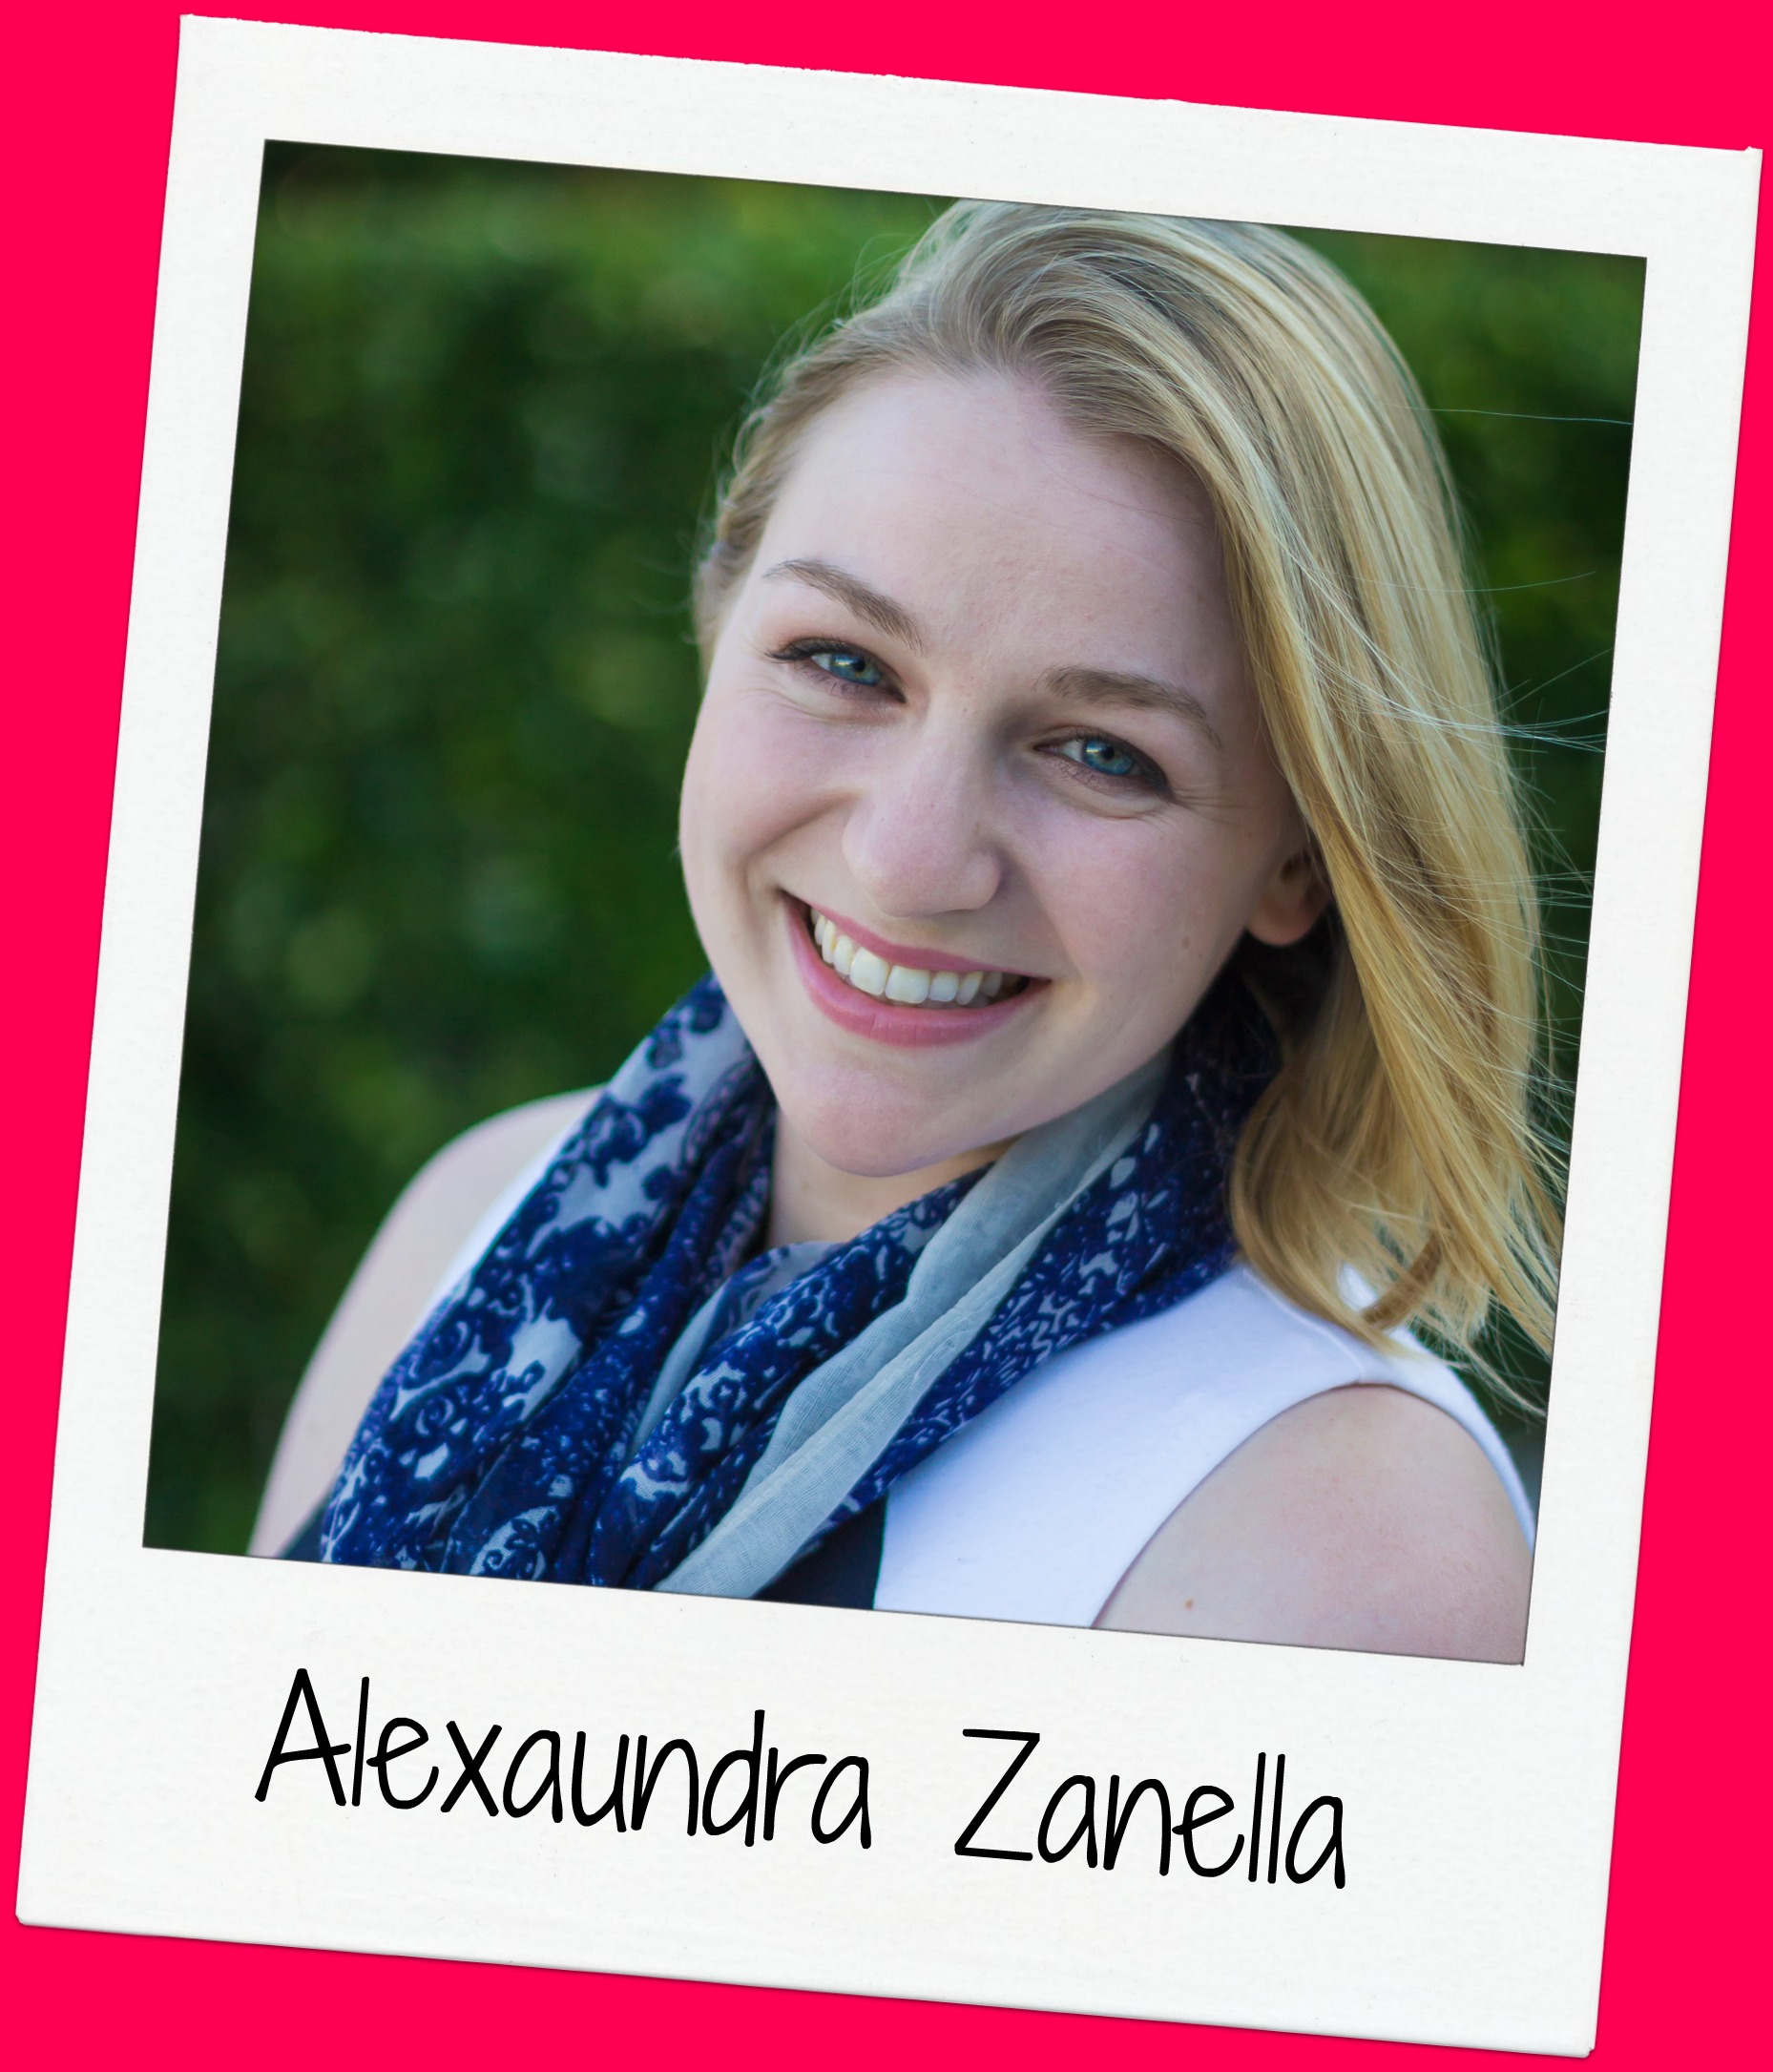 Having grown up wanting to be Indiana Jones, Alexaundra loves to find new ways to combine her passions for science, history, languages and world travel. She is currently pursuing a Master's degree and co-teaching an after school science program.